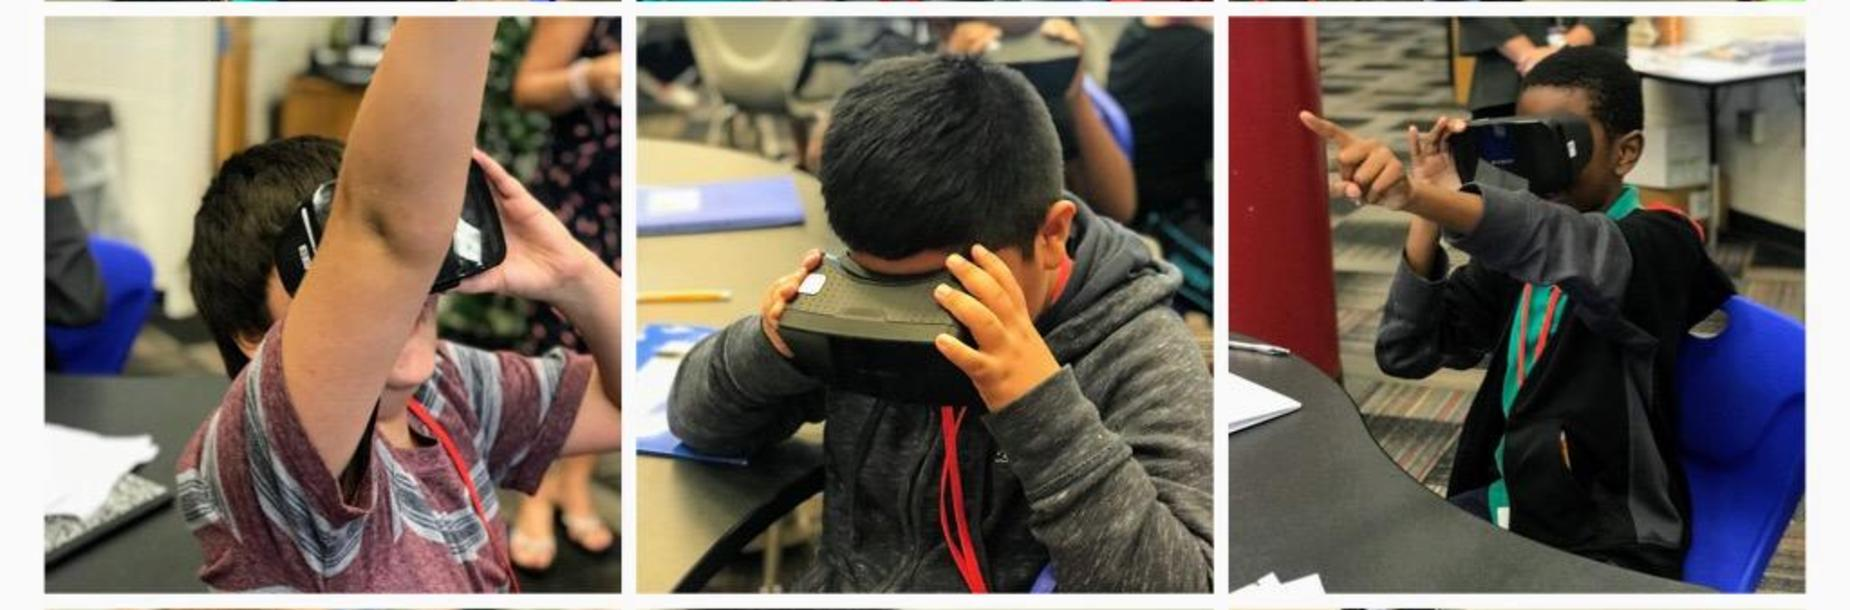 6th Grade Science students use virtual reality to explore volcanoes.